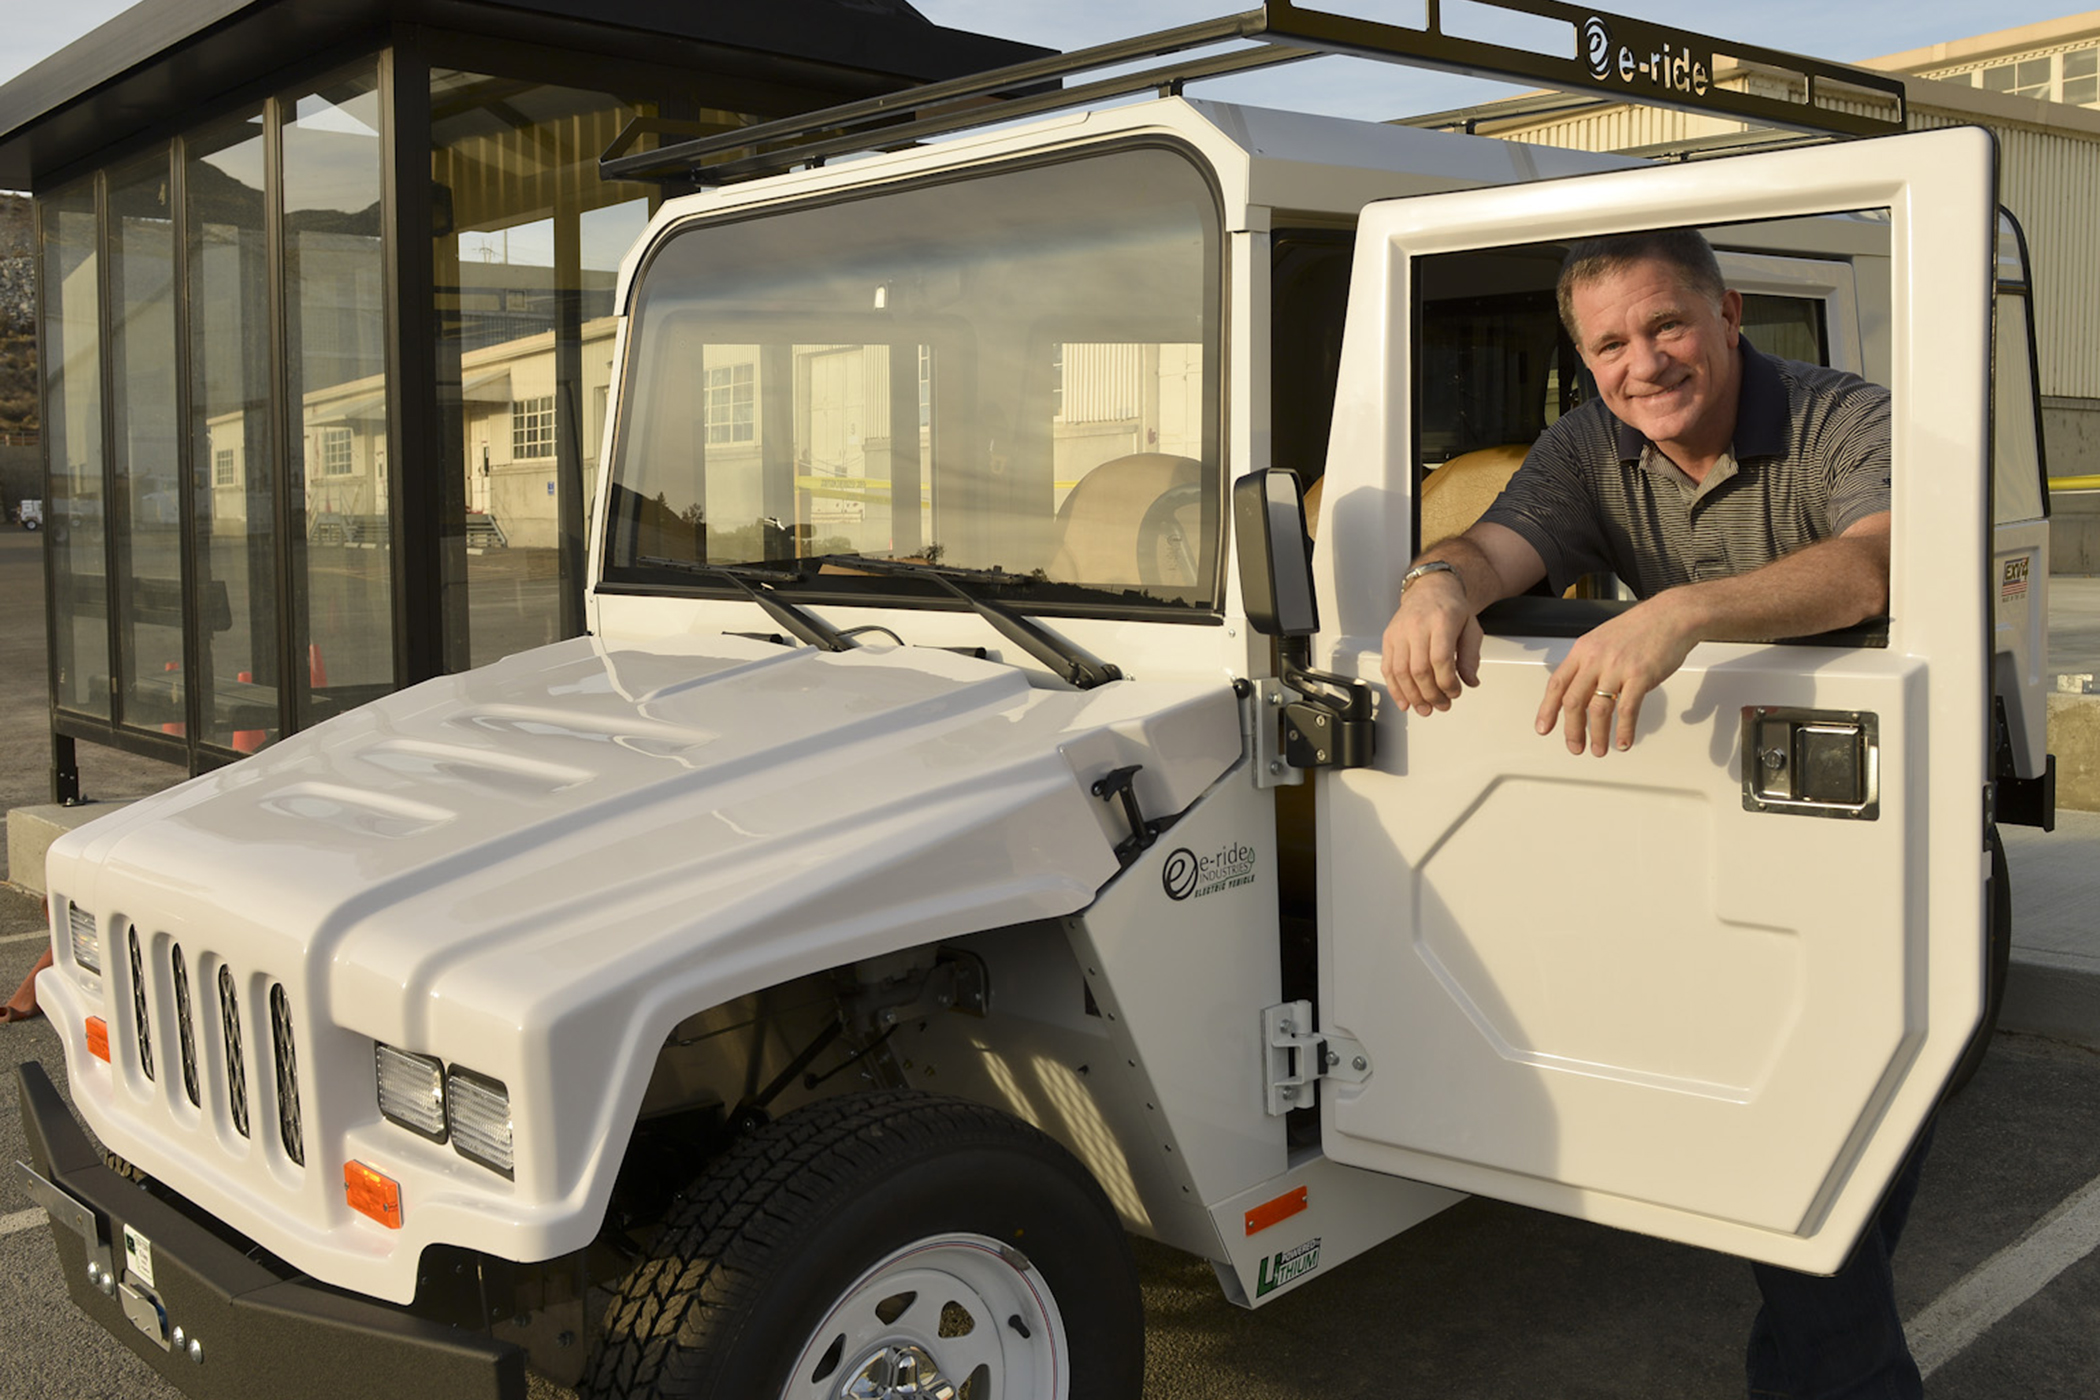 Deputy Power Manager Doug Anderson says the purchase of 27 Electric Utility Vehicles (EUV) this fall will not only help reduce greenhouse gas emissions but also help solve a chronic vehicle shortage for making short trips around the project.